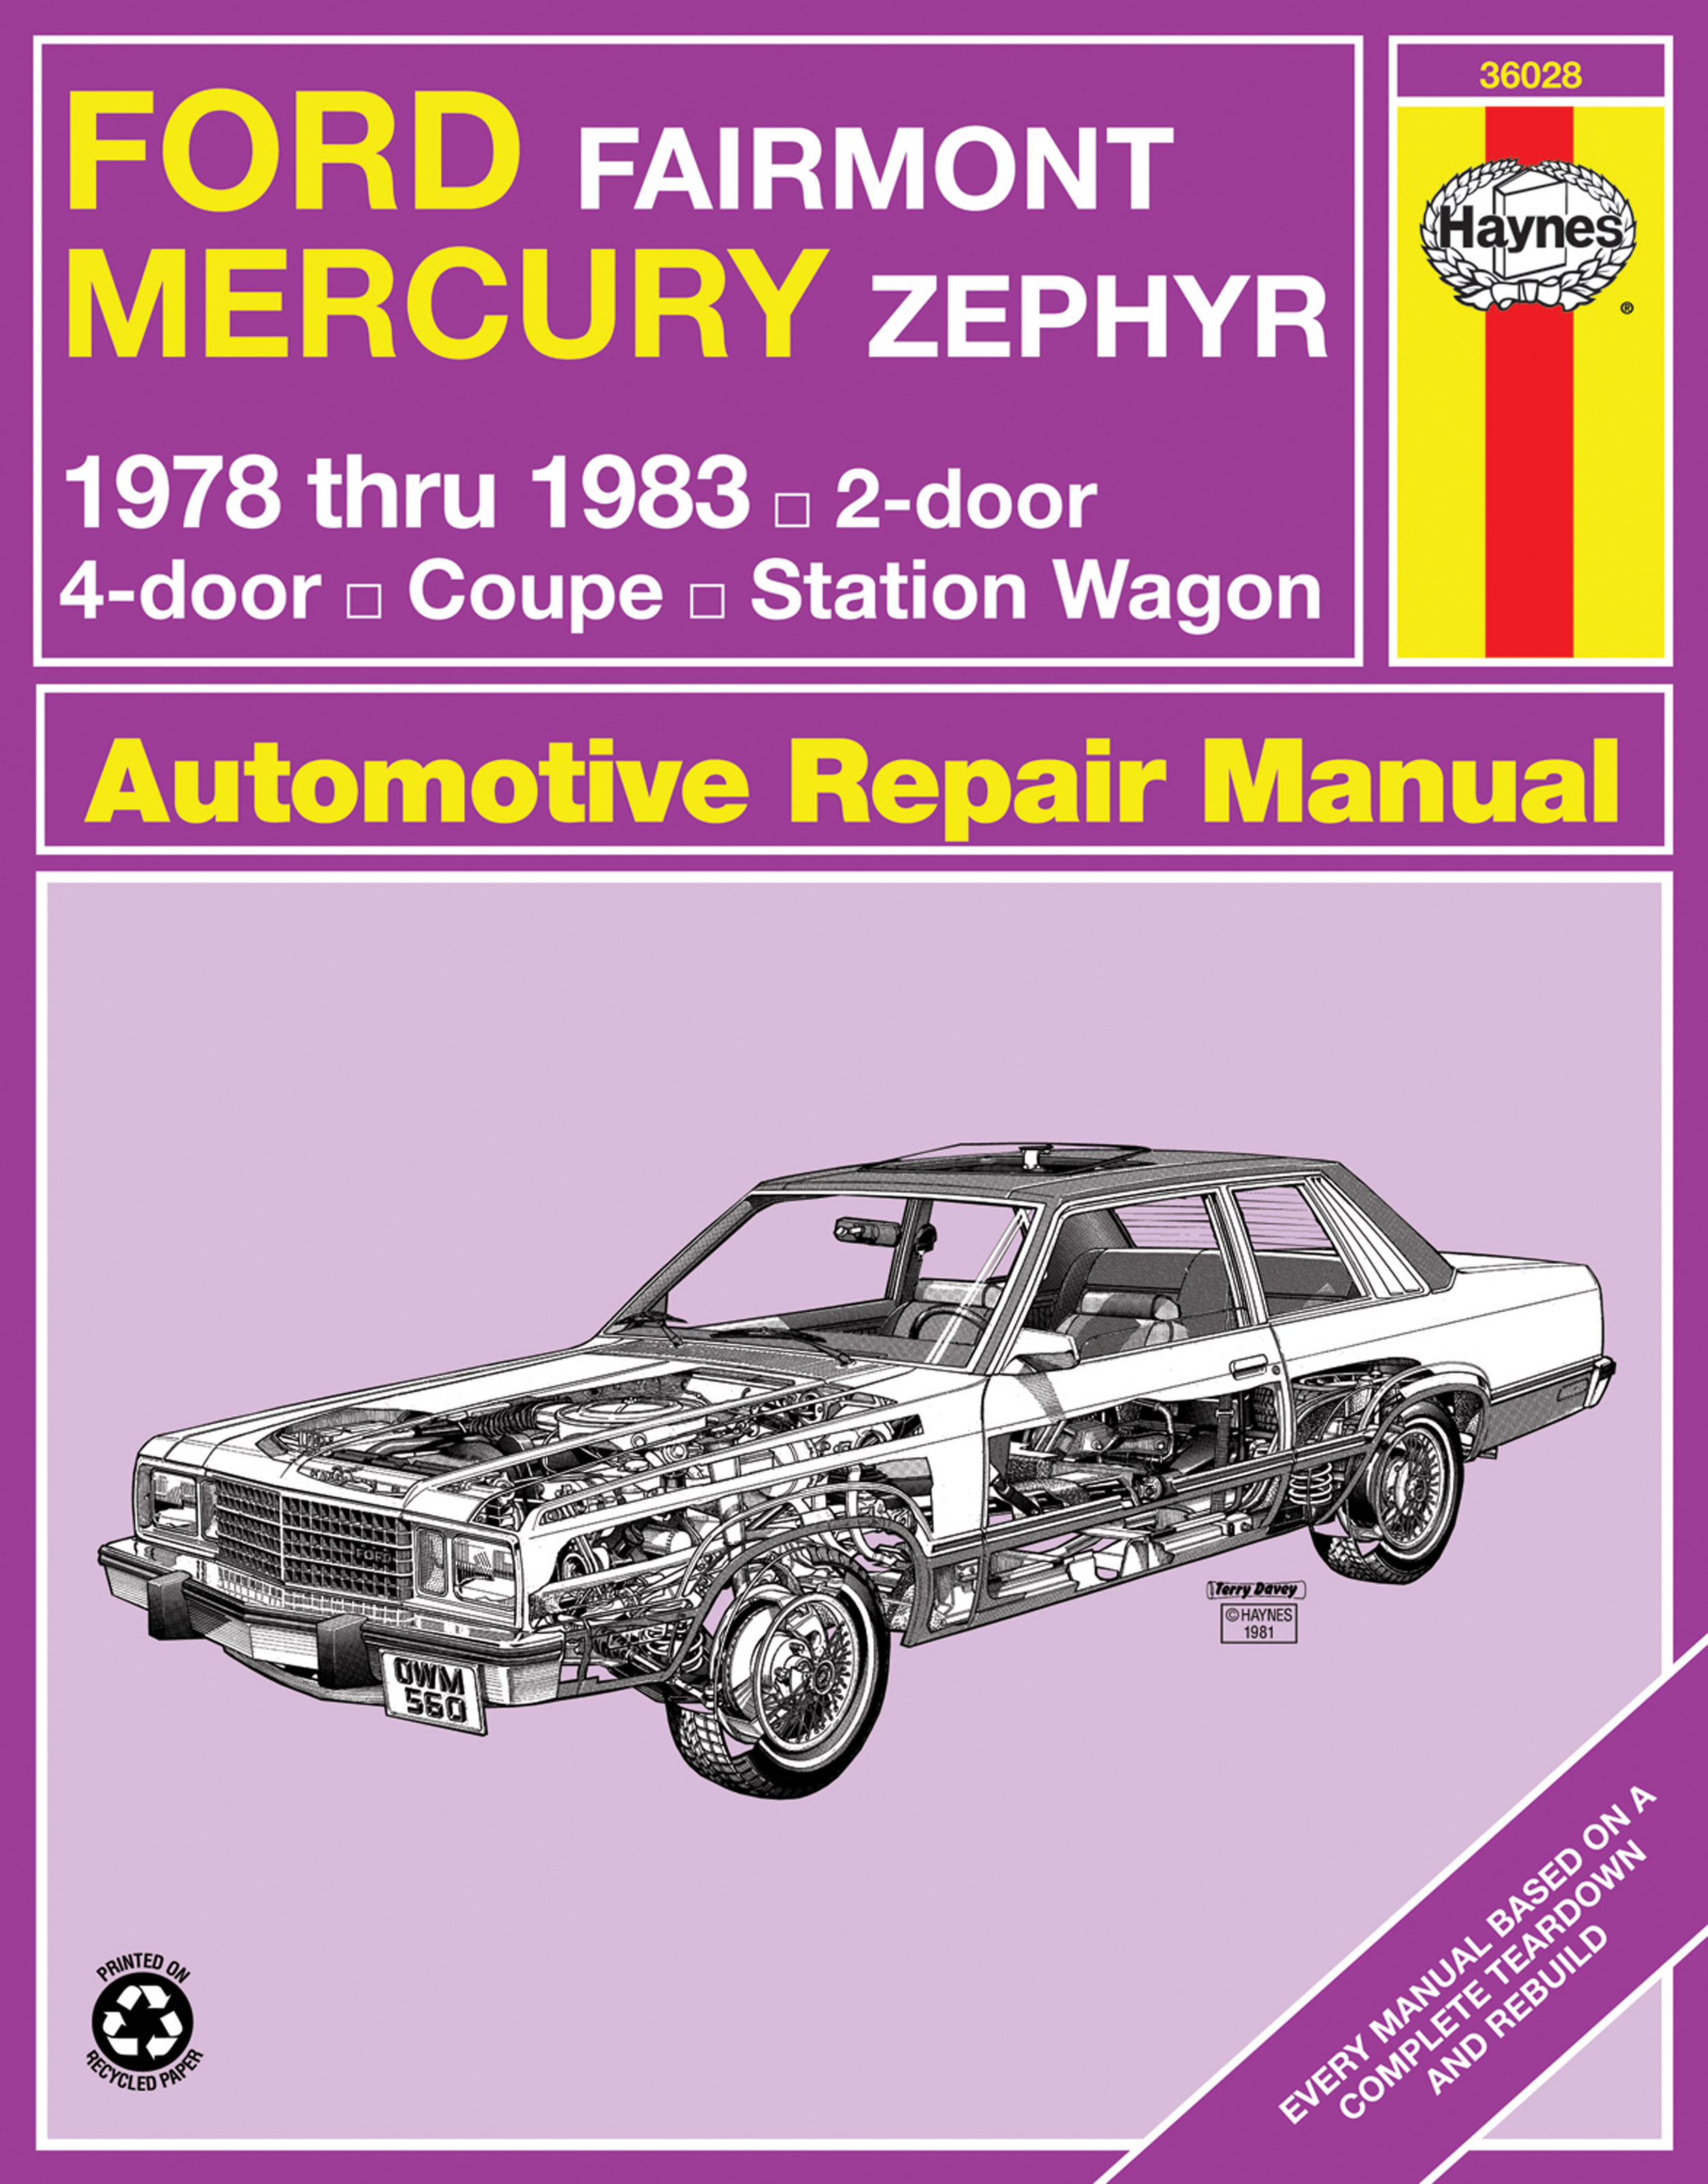 Ford Fairmont Mercury Zephyr 1978 1983 Haynes Repair Manual Usa Wiring Diagram Enlarge